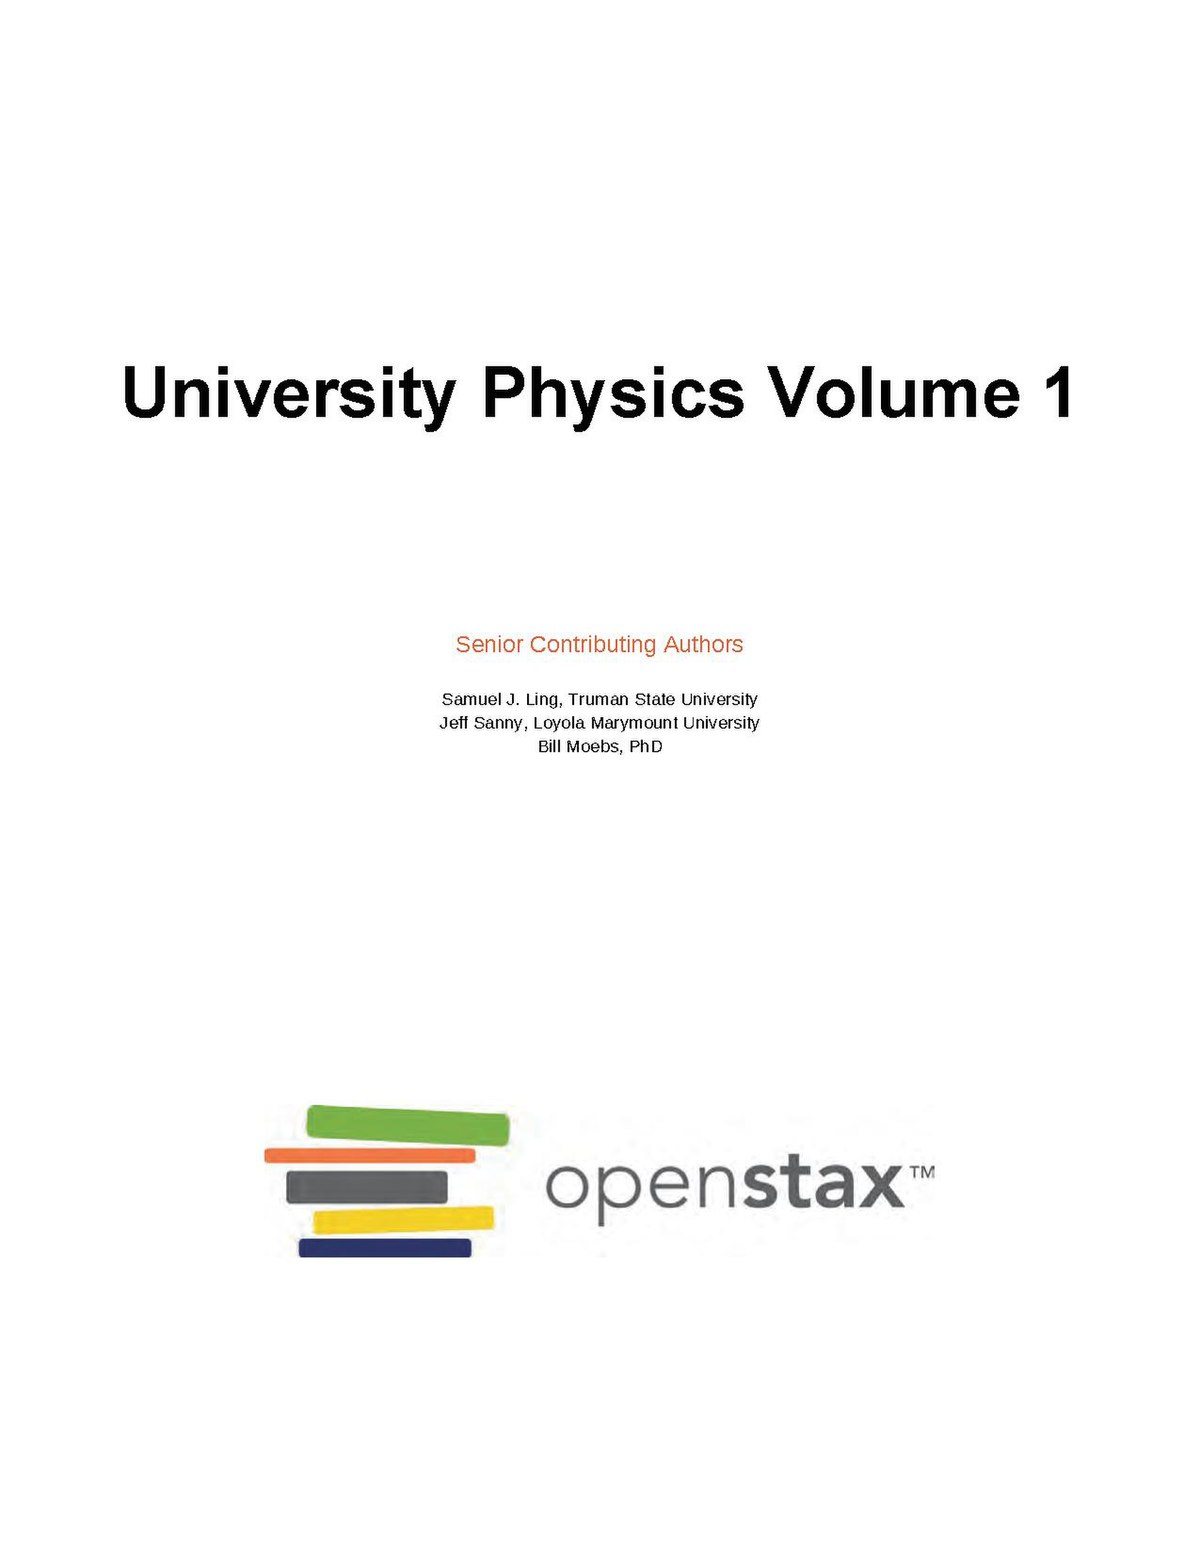 OpenStax University Physics - Wikiversity